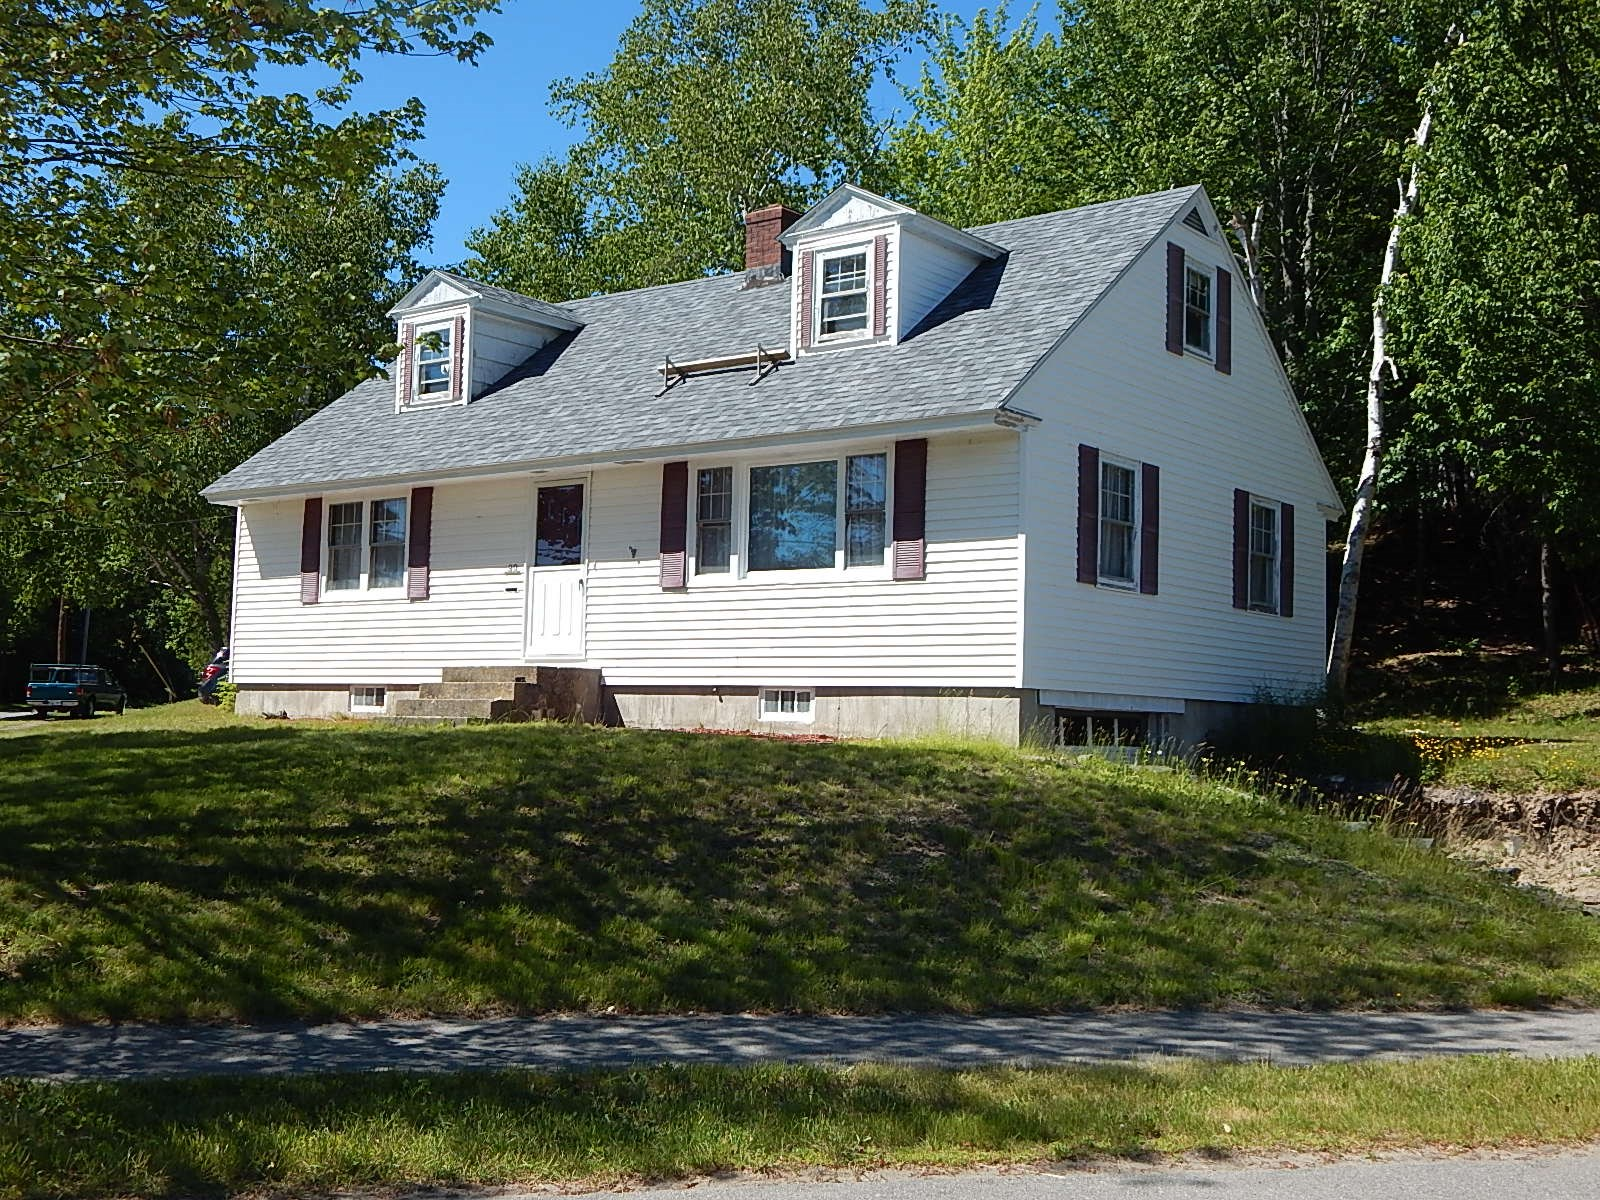 In-Town Home For Sale In Millinocket Maine